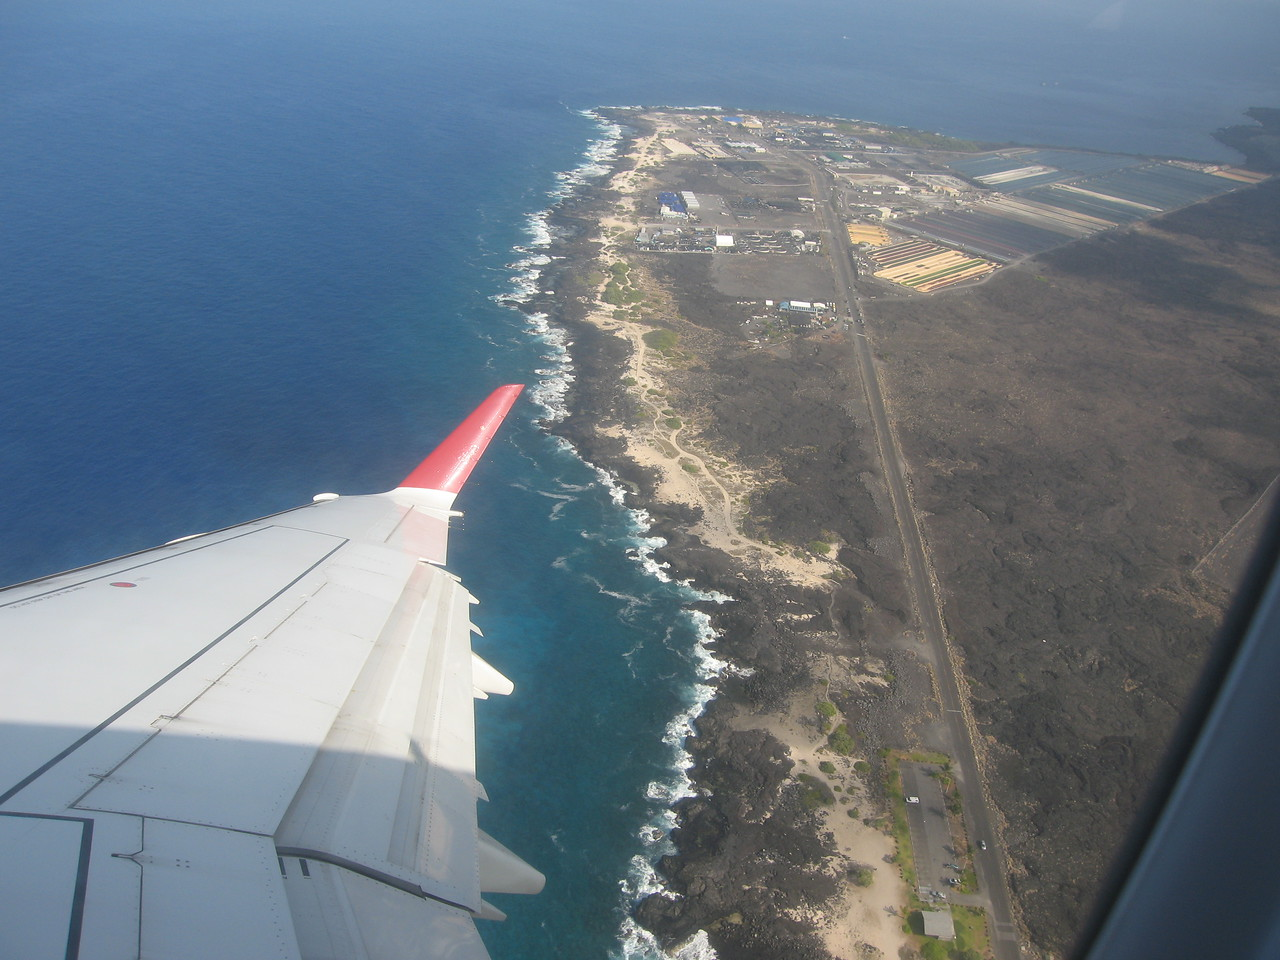 Leaving the Kona airport with the cold water companies (abalone, lobster) on the shoreline below.